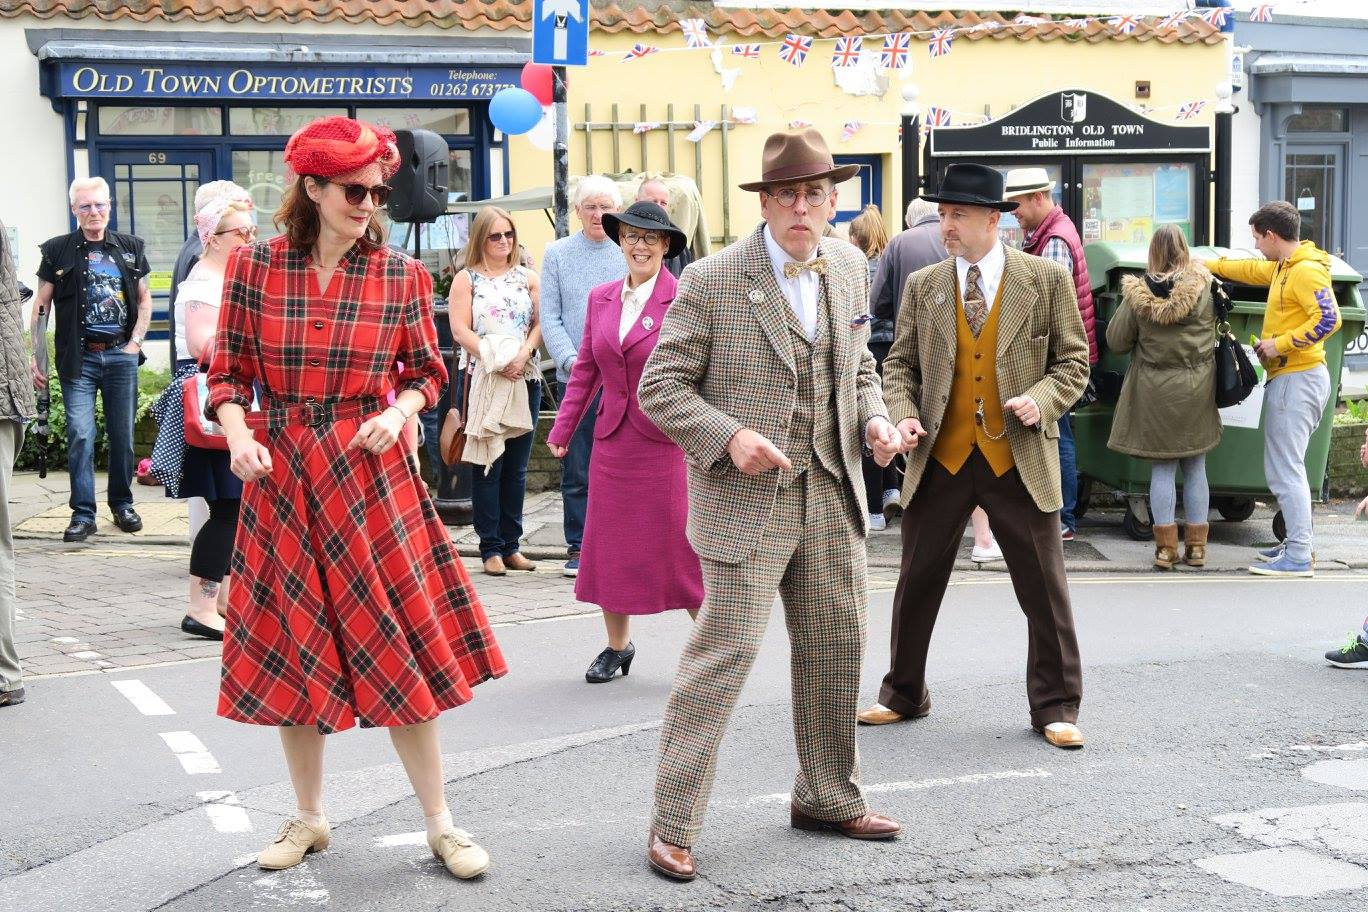 See Photos With 2018 Photos: BRIDLINGTON OLD TOWN 1940s FESTIVAL 2018